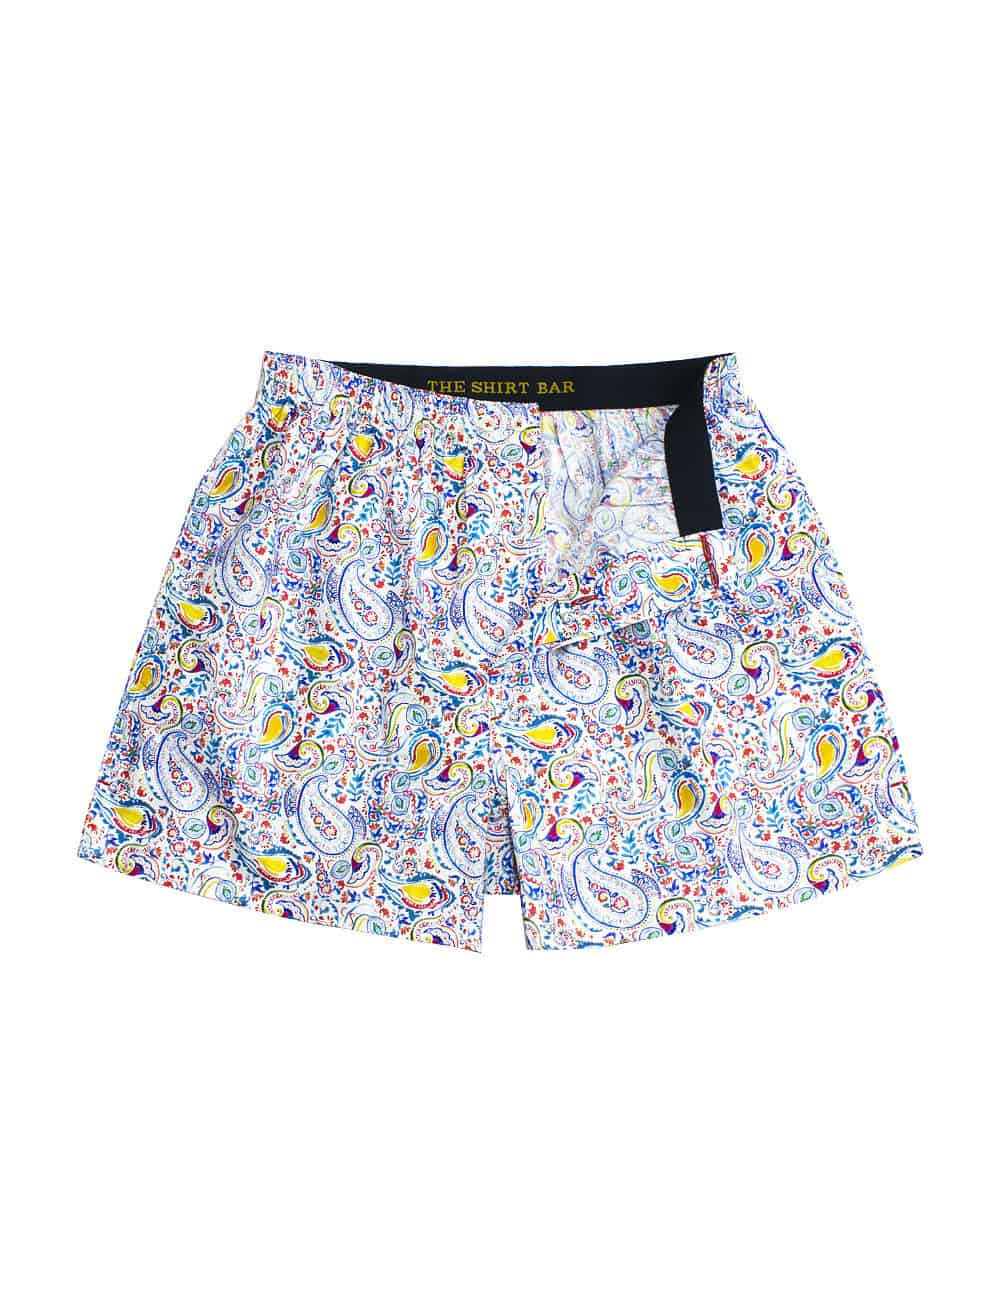 Singapore Collection Immigrant Cultures Blue Paisley Print Button Fly Boxer Shorts with Silky Finish IW1A3.1